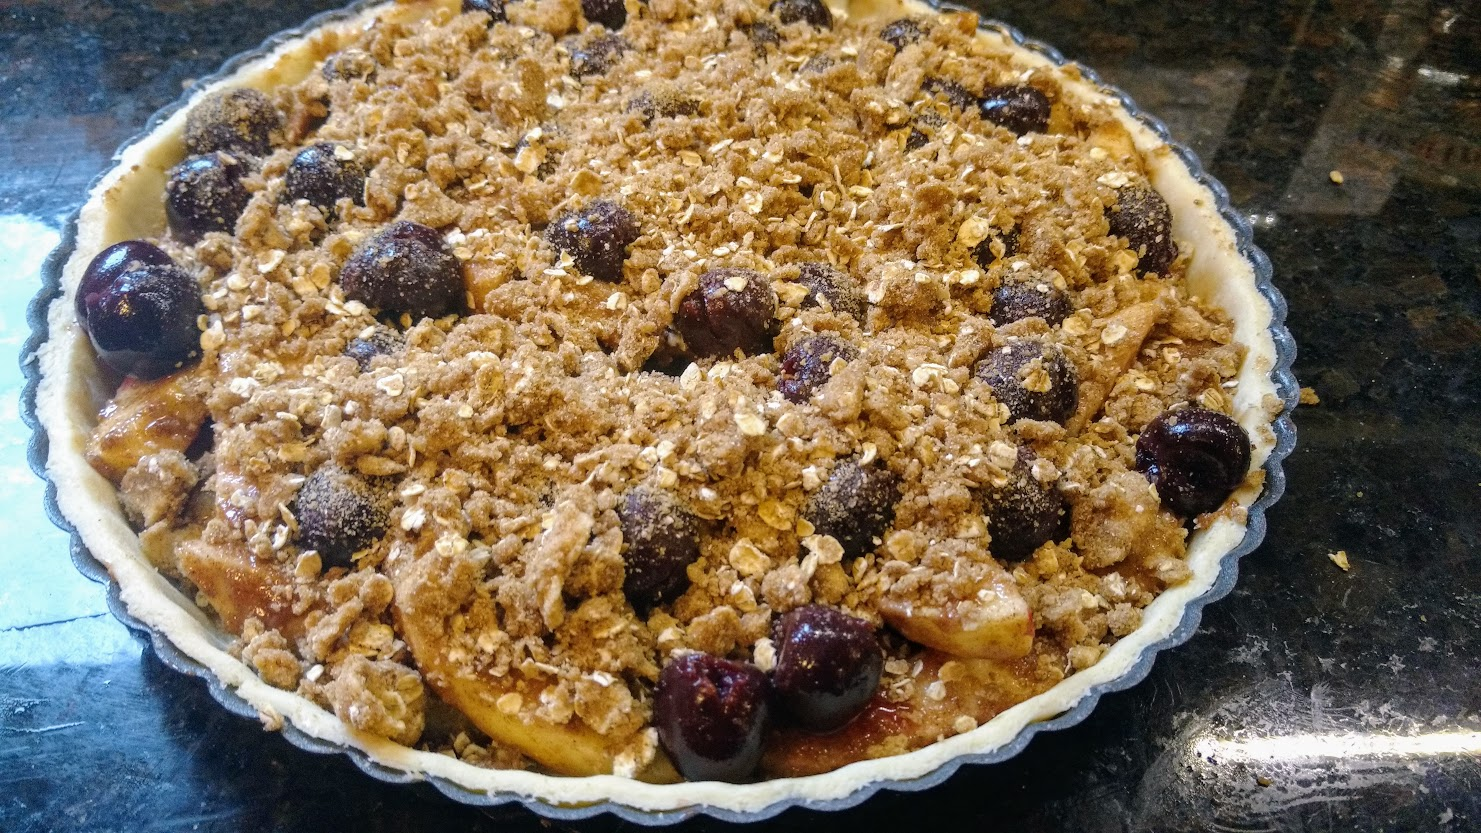 Apple and Sour Cherry Flan - with topping